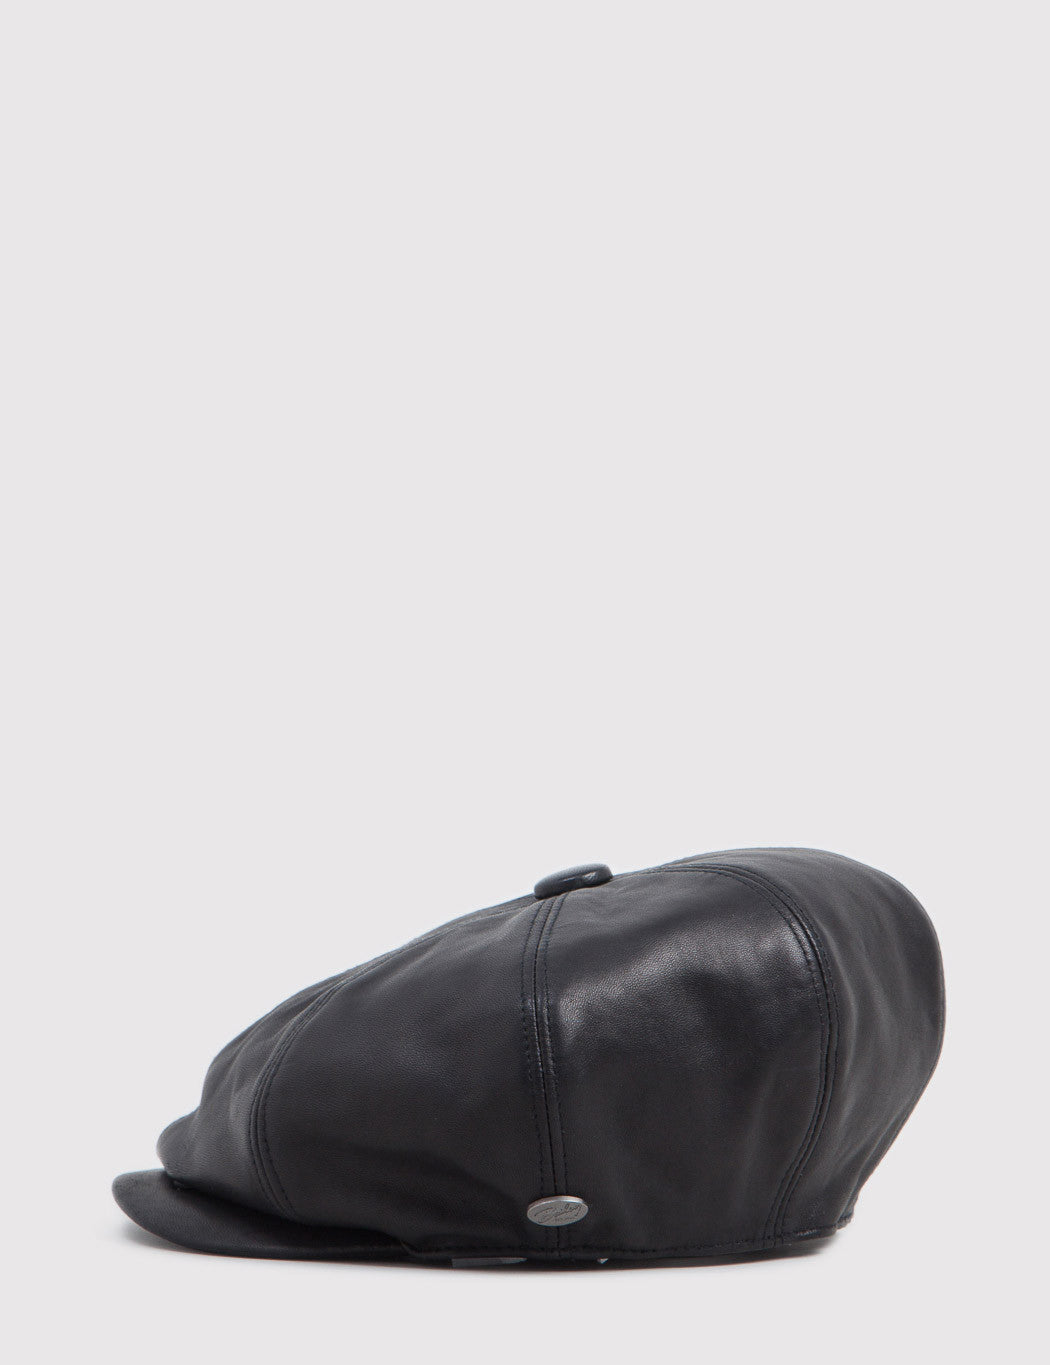 Bailey Noclin Leather Newsboy Cap - Black